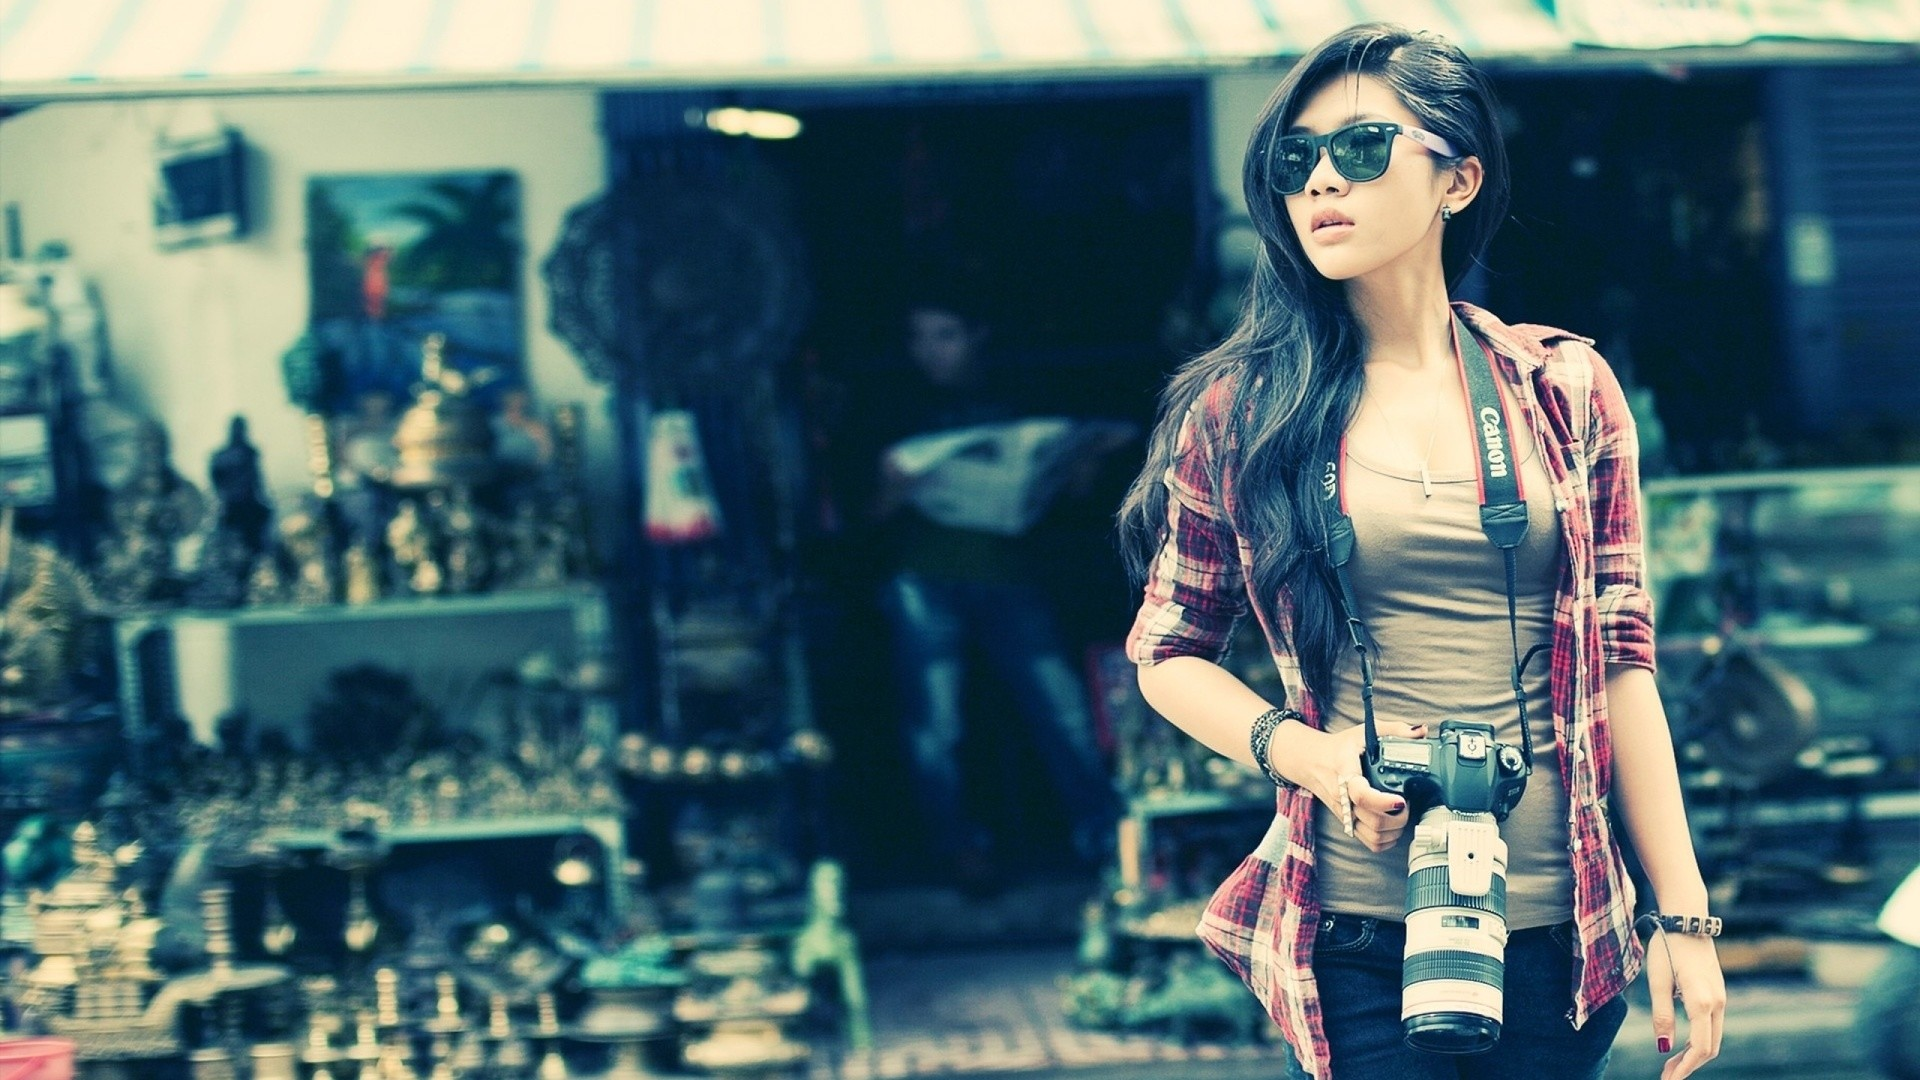 alignthougths-Cool-Attitude-Girl-Photo